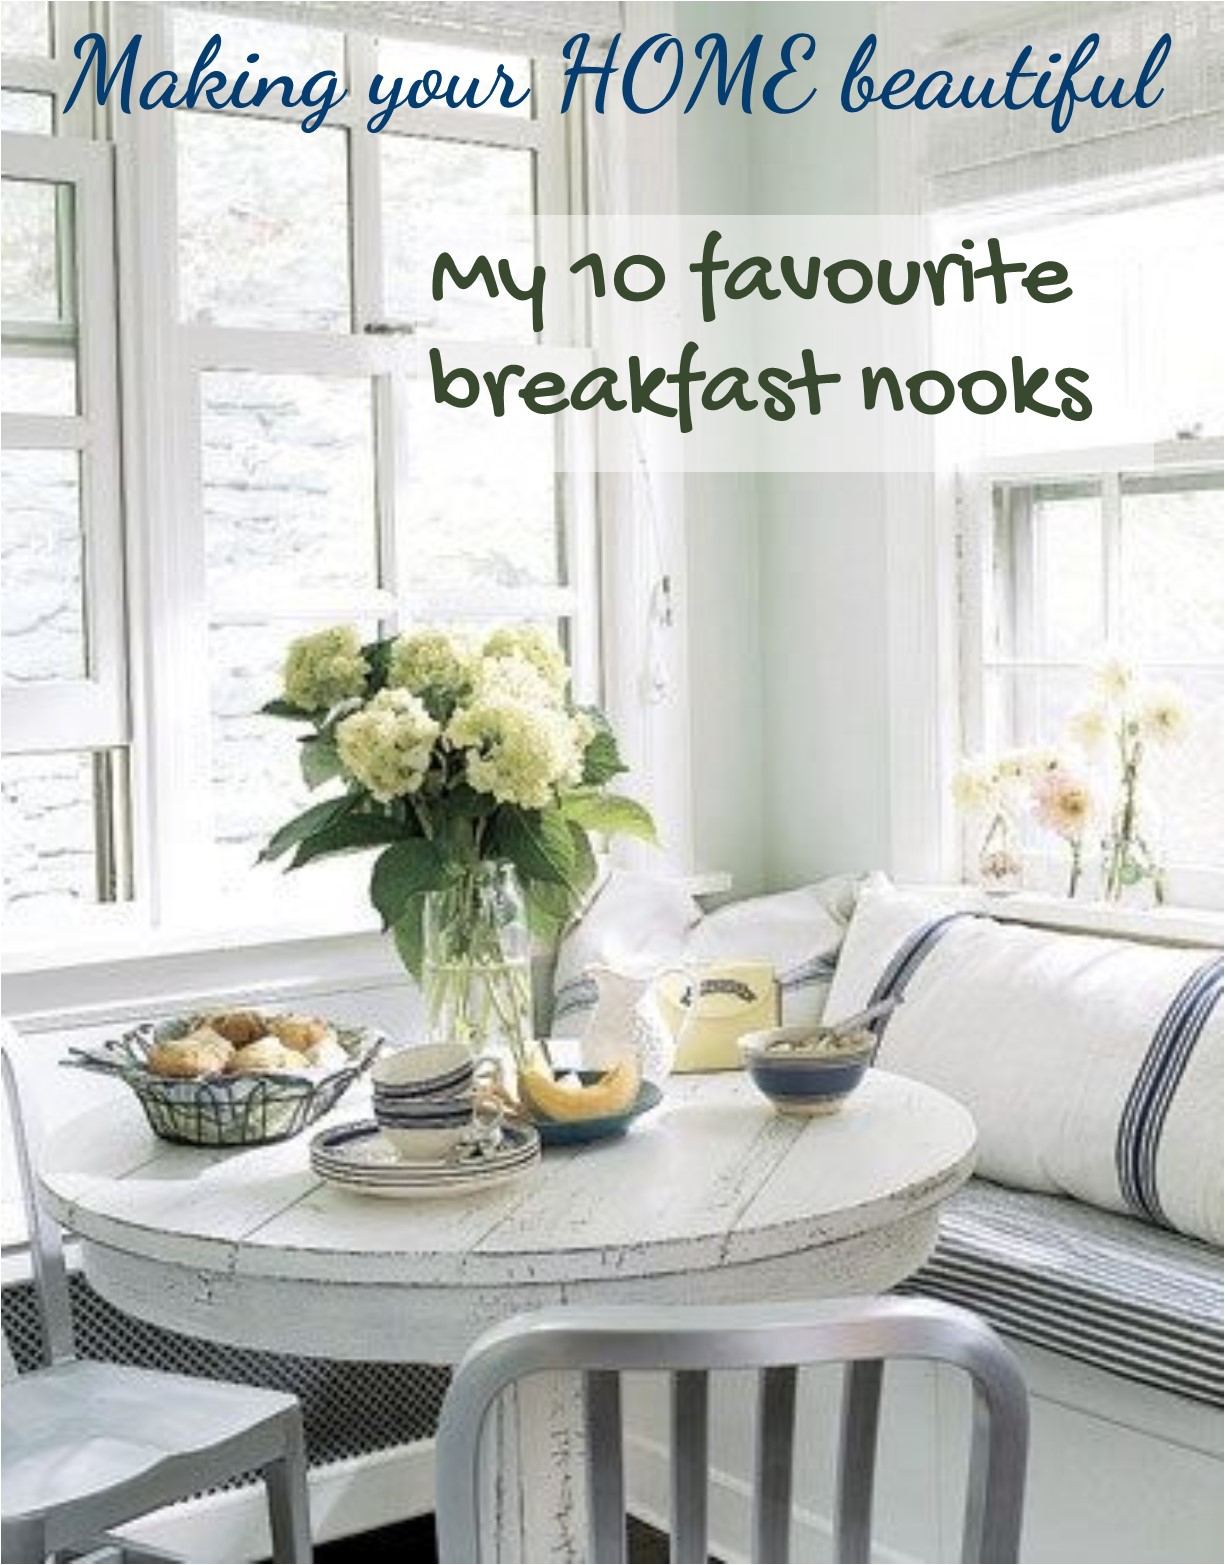 Breakfast Nooks - My 10 top favourites